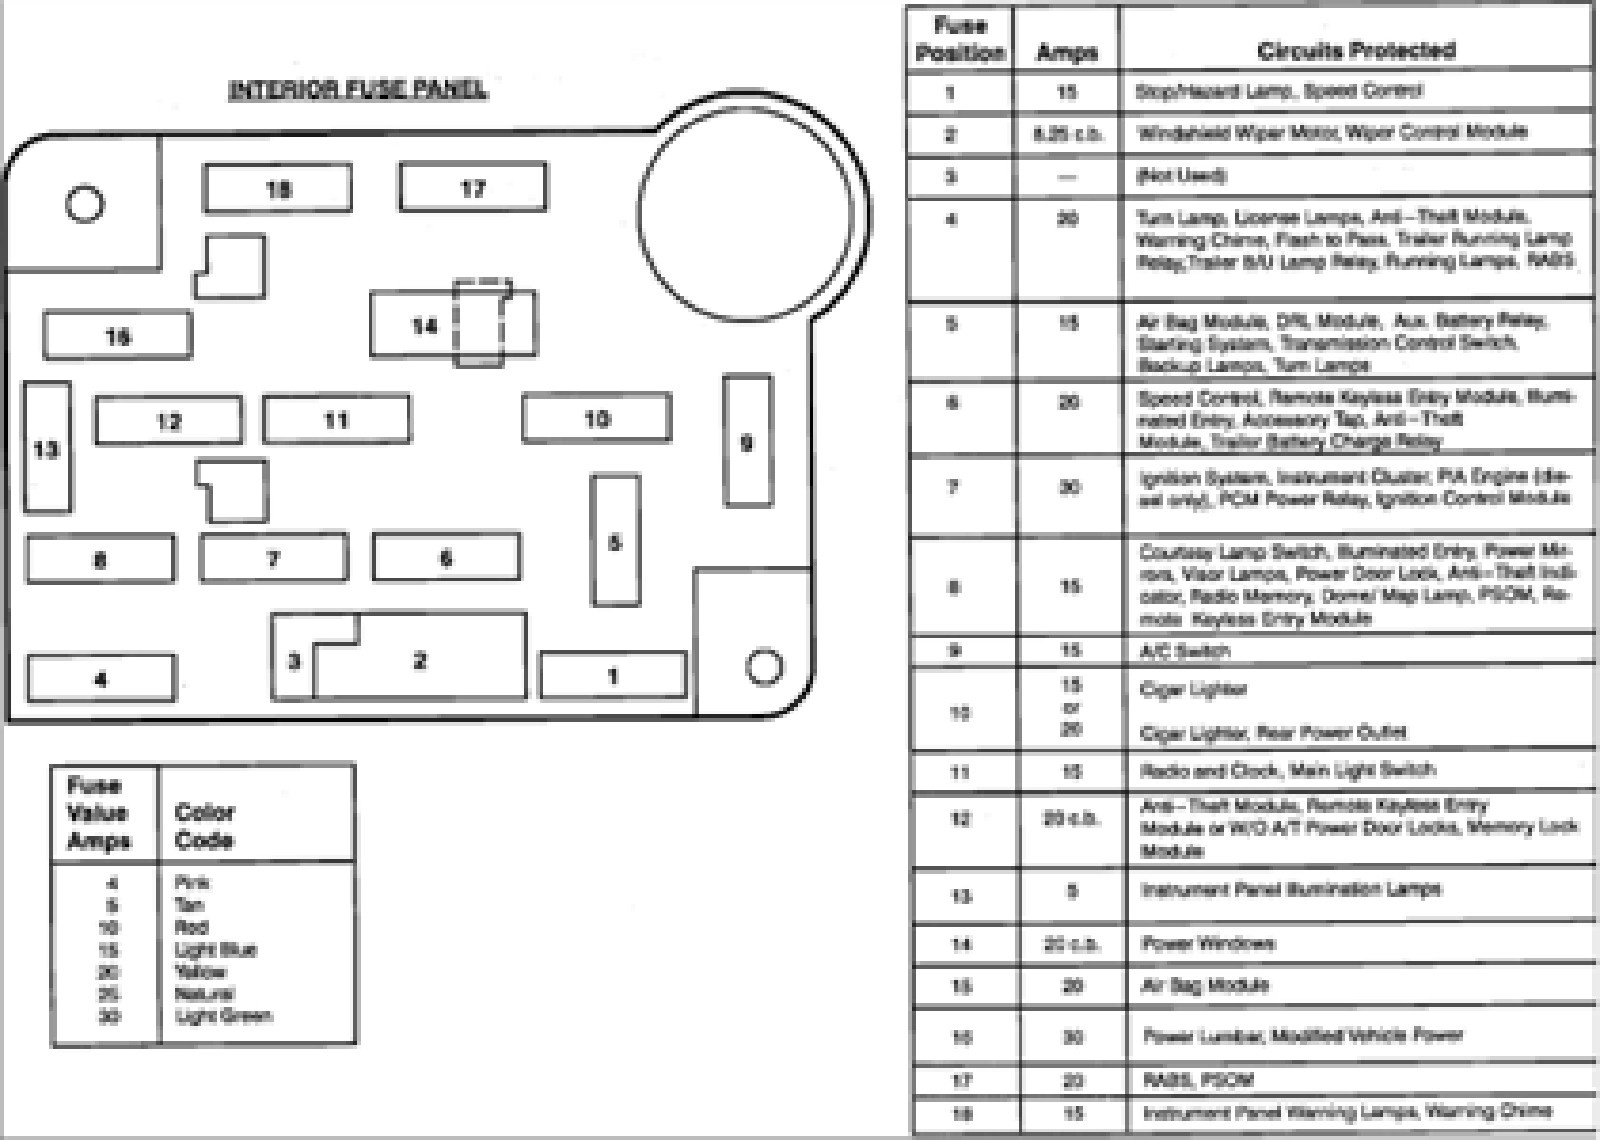 Ford E 350 Wiring Diagrams 1993 -1994 Town Car Fuse Box Diagram | Begeboy  Wiring Diagram SourceBegeboy Wiring Diagram Source